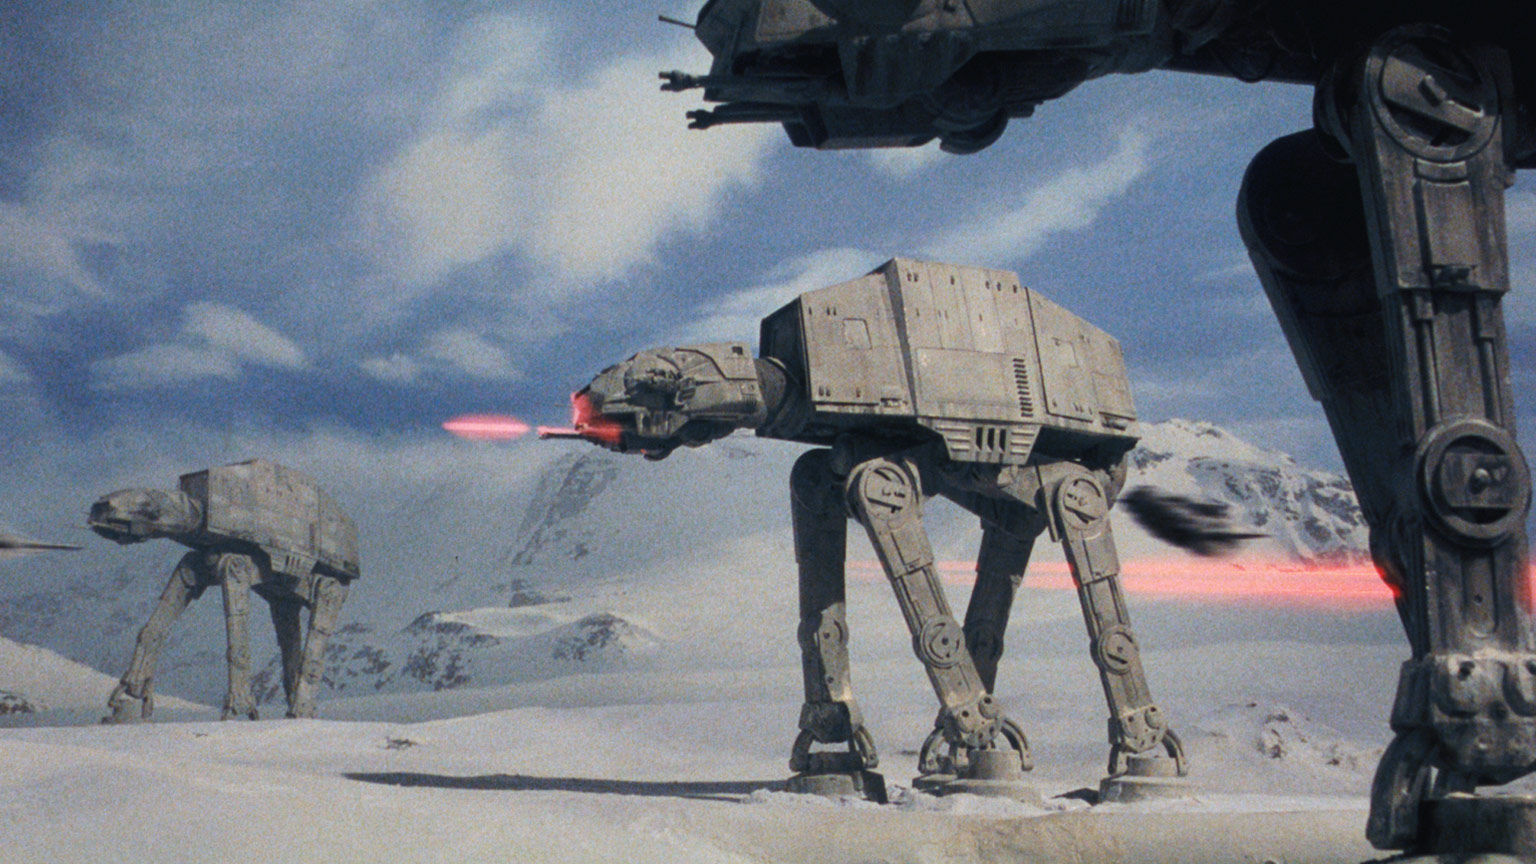 AT-ATs in the Battle of Hoth